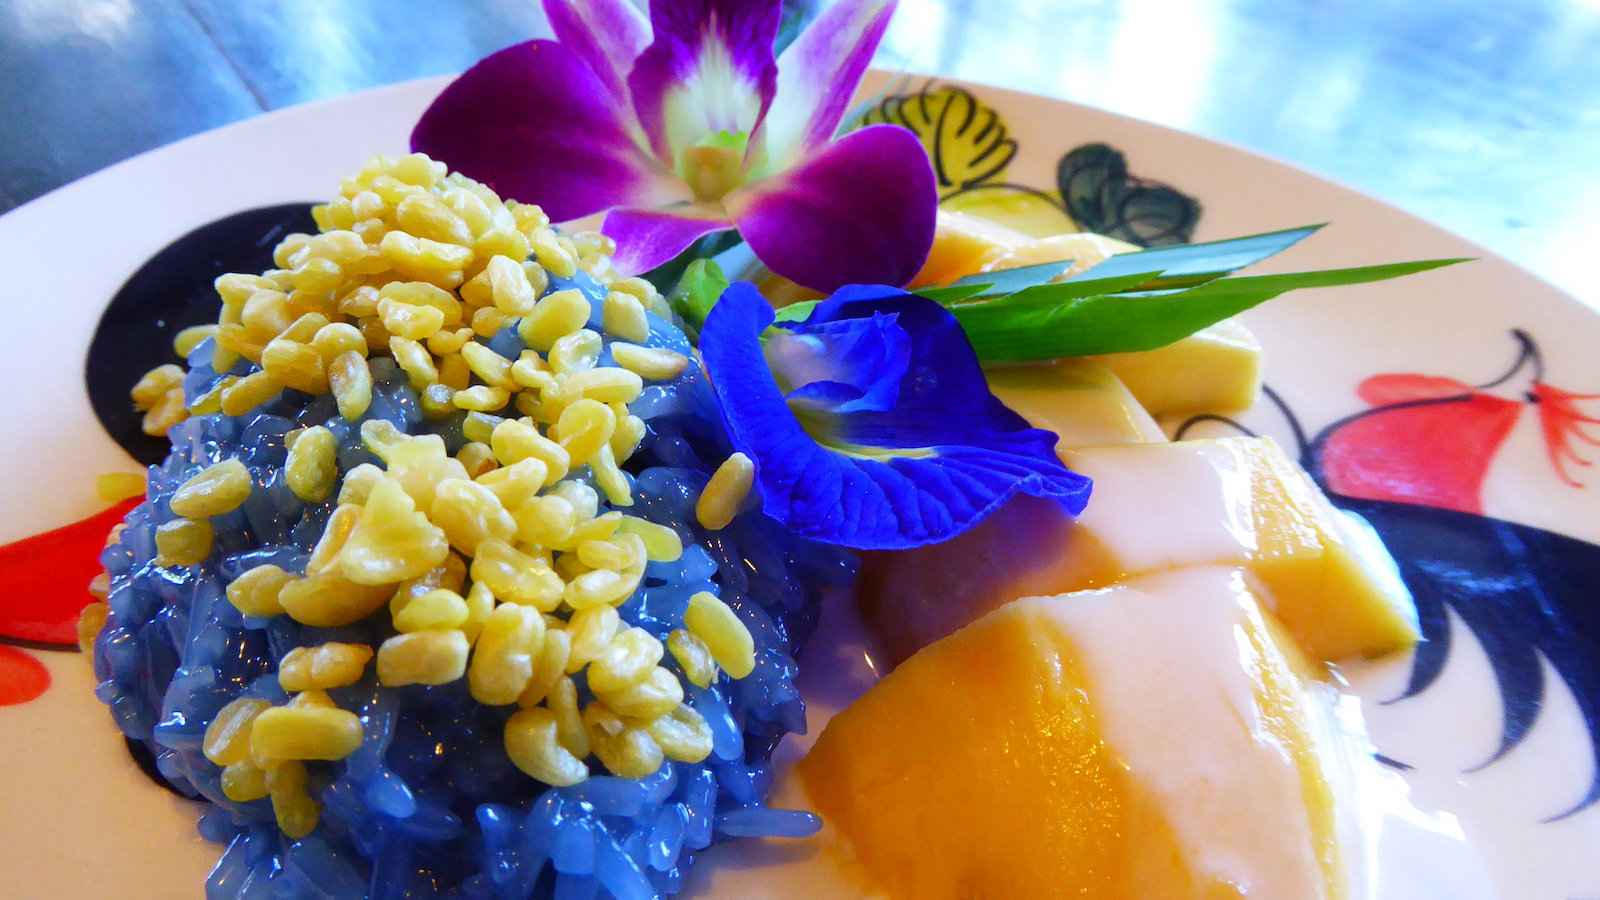 Mango sticky rice is one of the best sweet treats you can get at street food markets in Laos